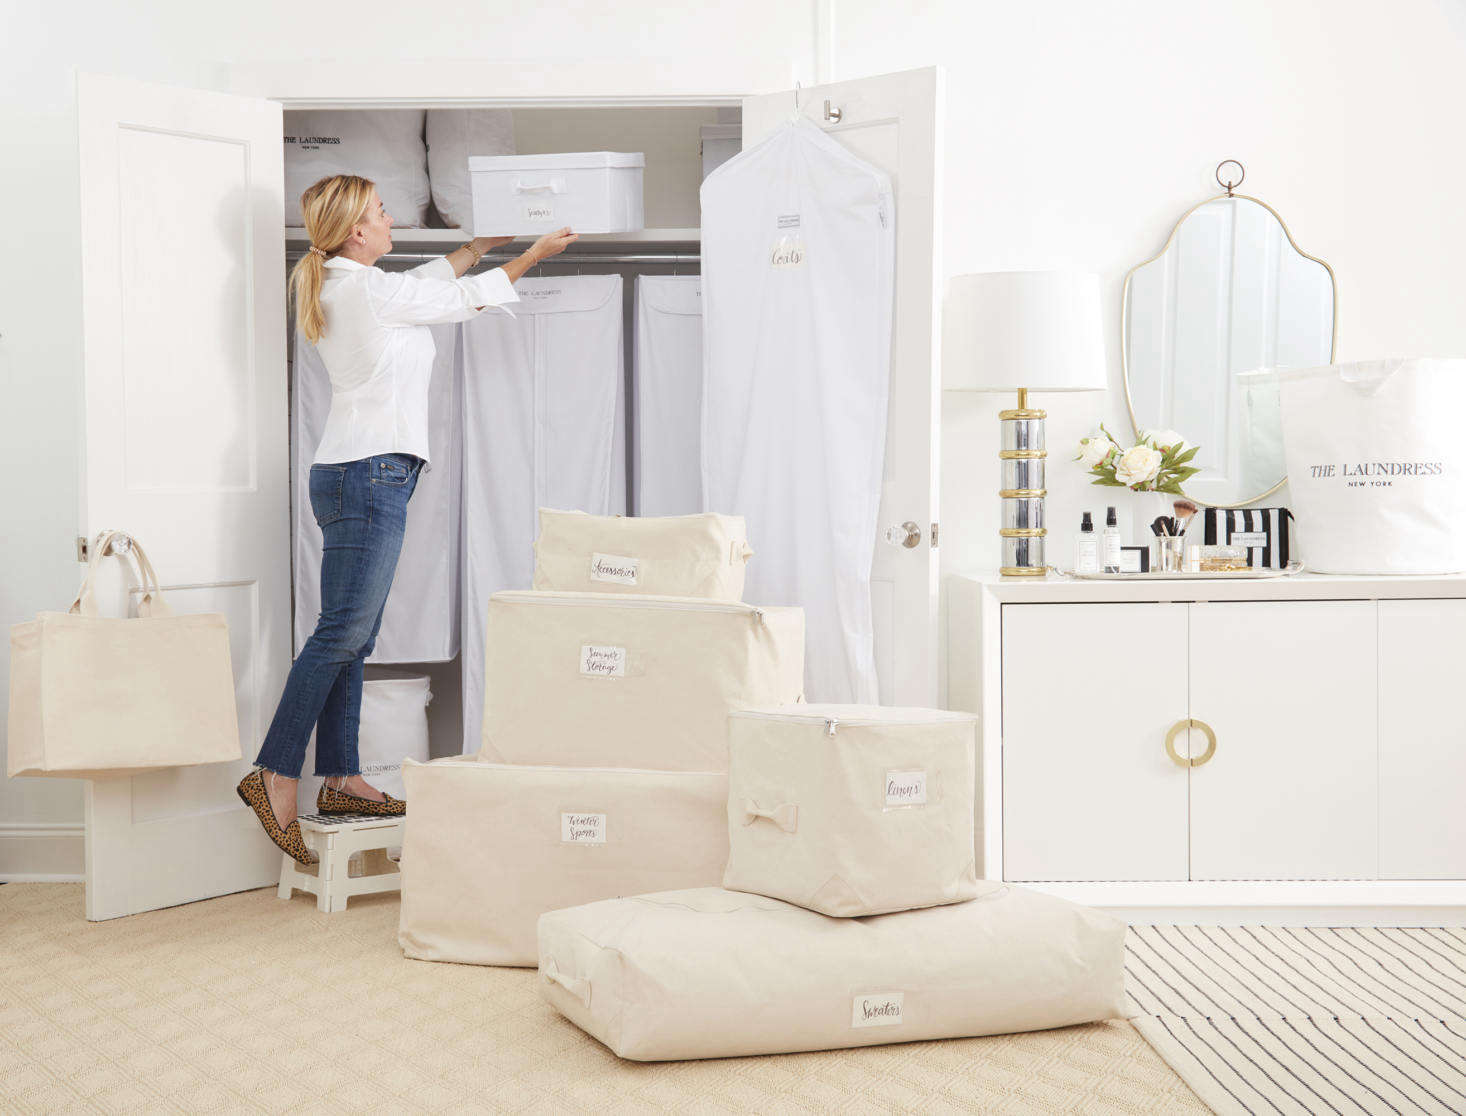 New & Noteworthy: The Laundress Goes Beyond the Laundry Room with a New Storage Collection